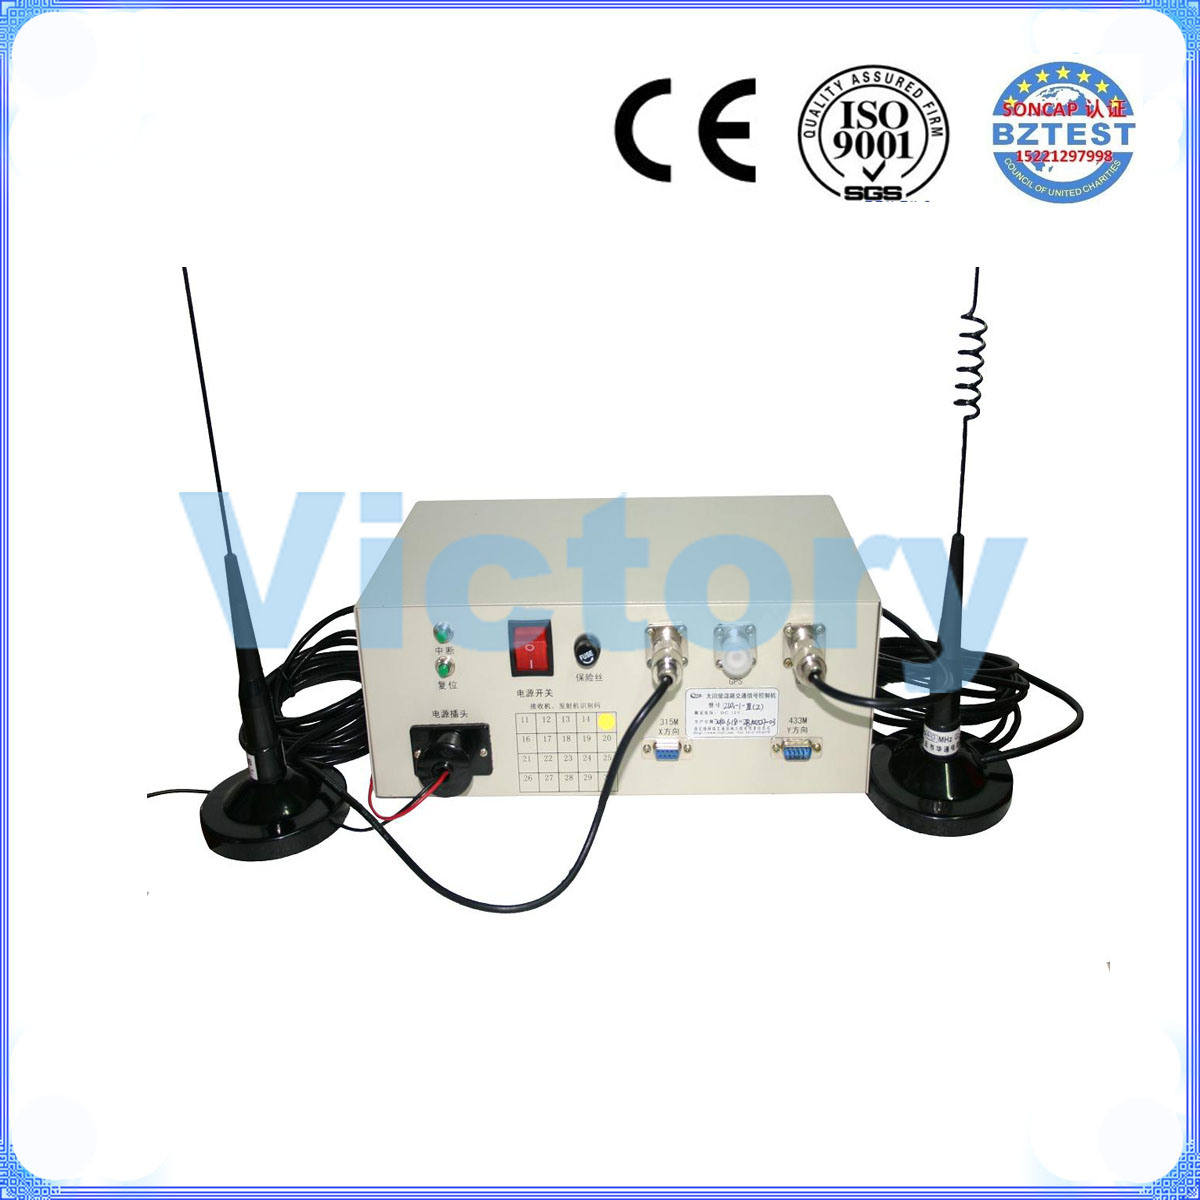 traffic light controller A fixed time traffic light control system is that boring and old-fashioned way in which traffic lights are configured to turn on the green color after a given period.